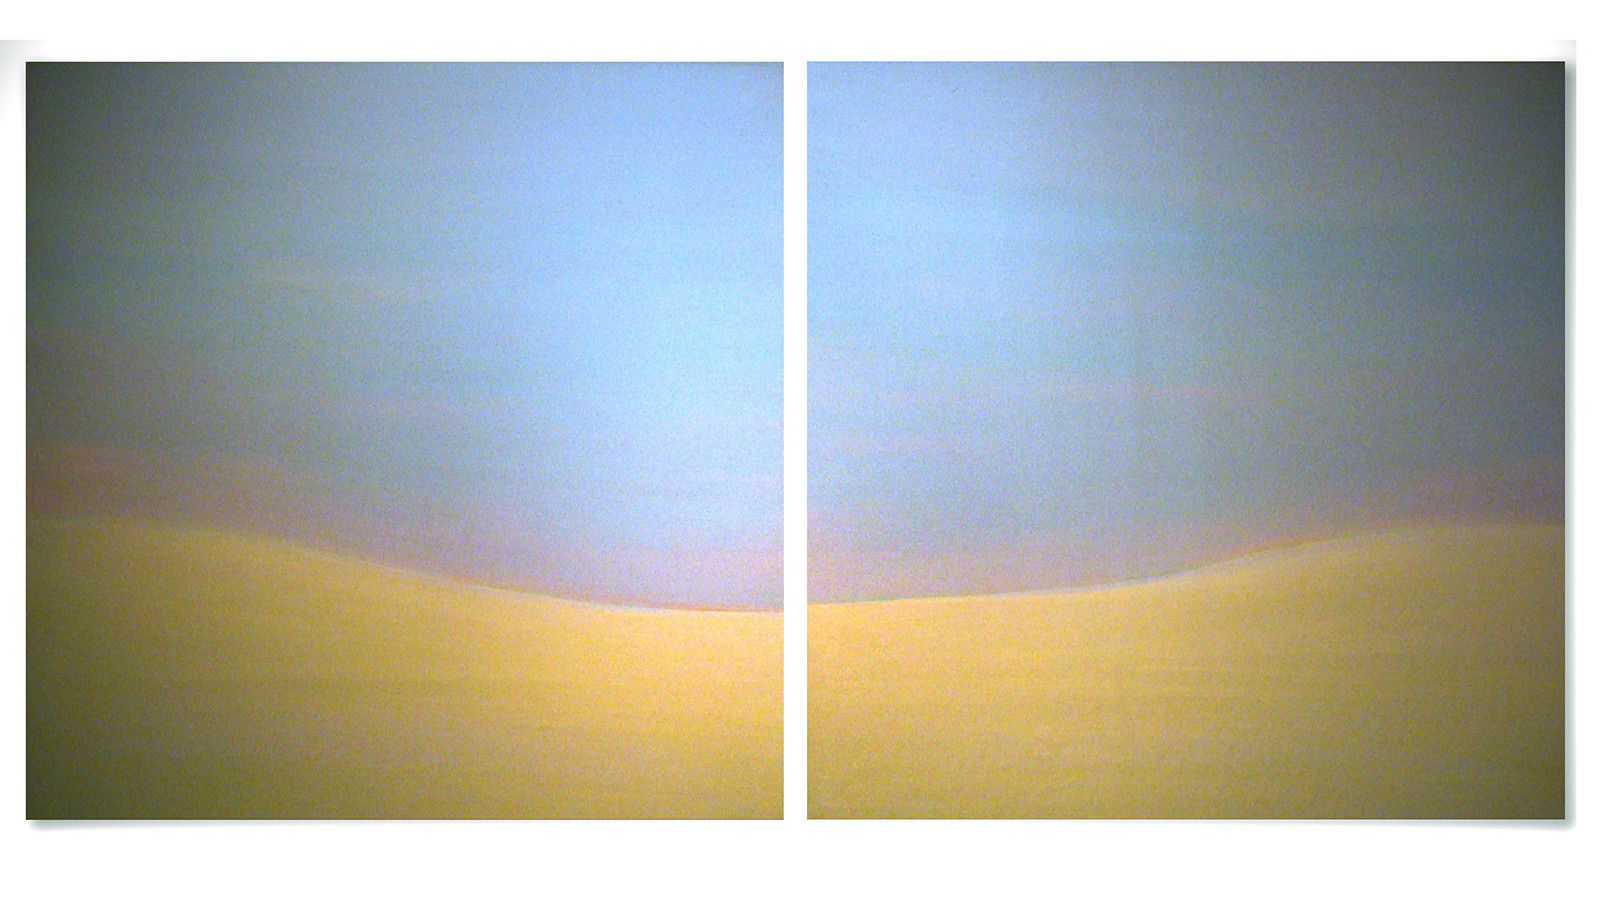 Beyond the Sunset, 2010-11, acrylic on wood panel, 92 x 92 cm each